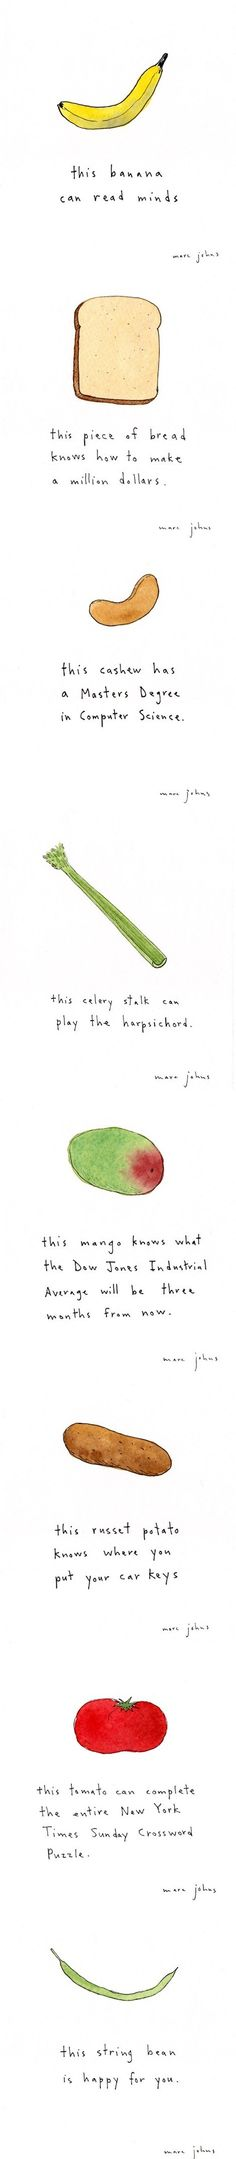 smart foods by Marc Johns